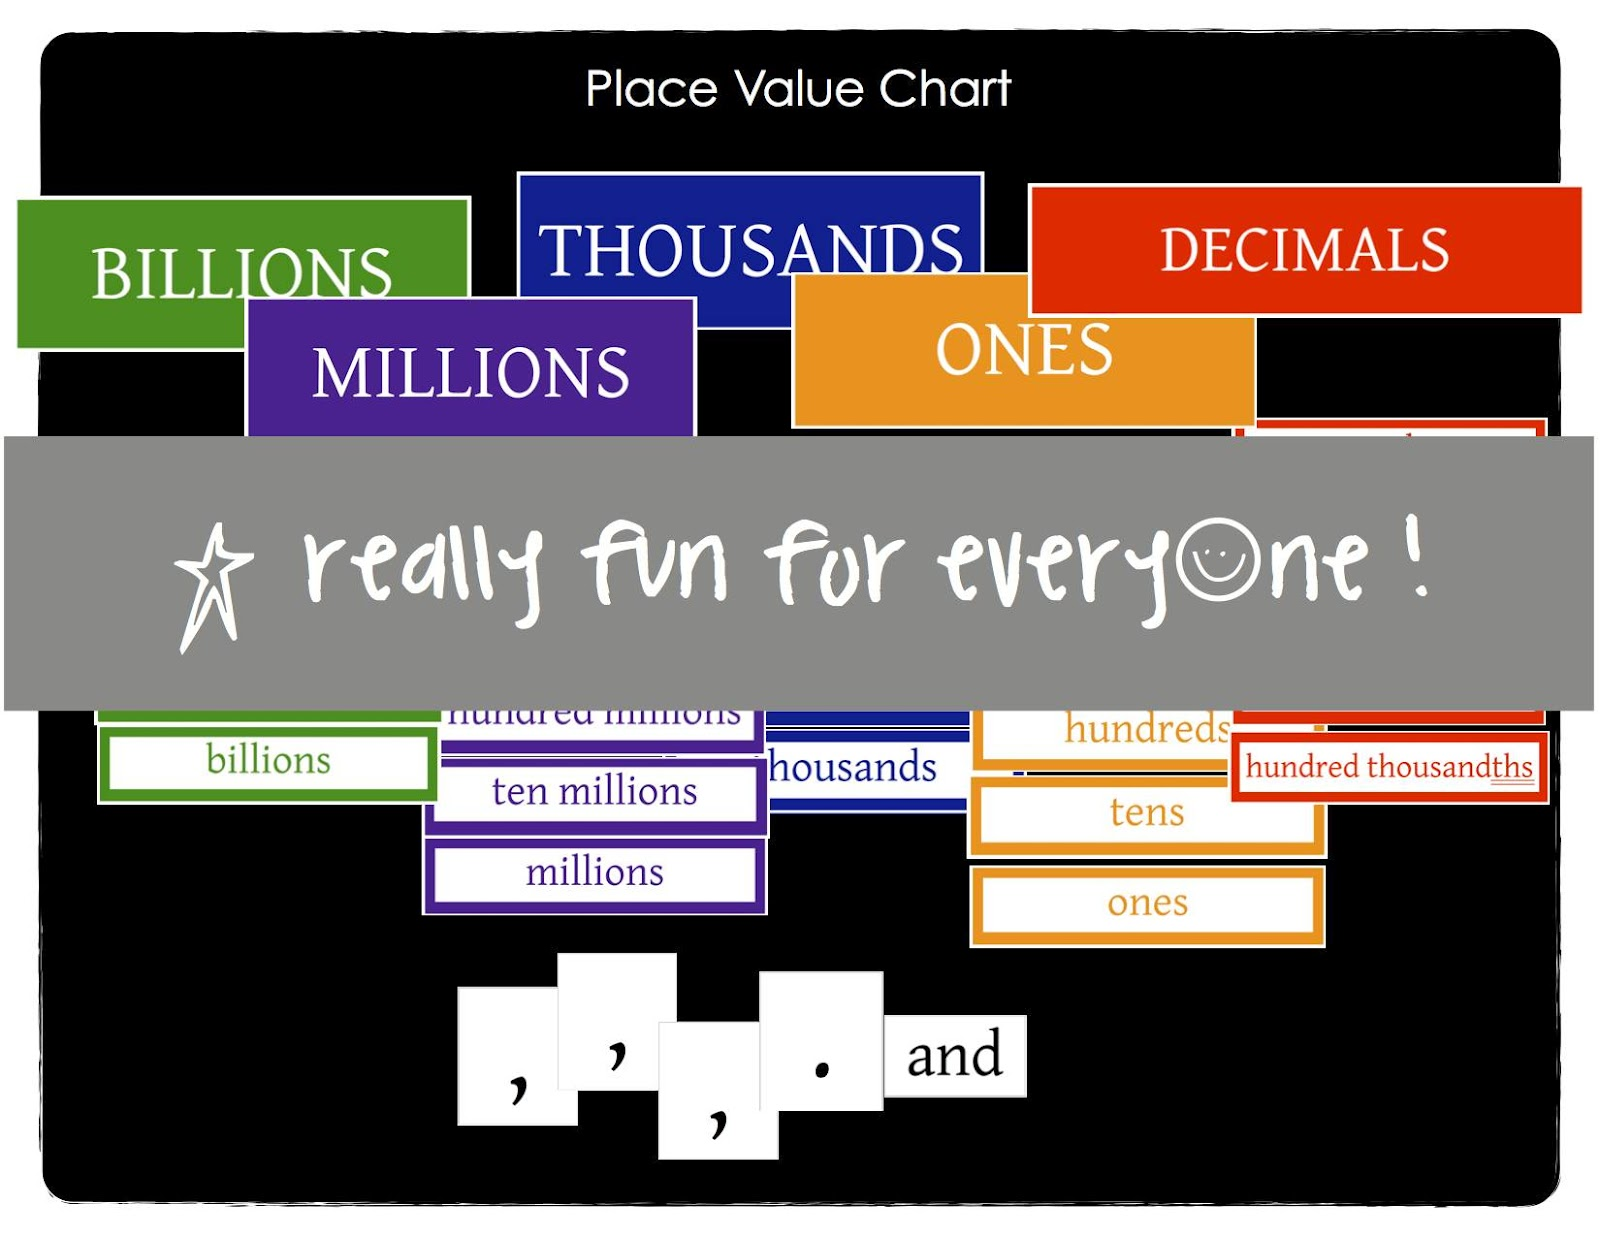 Really fun for everyone place value chart wednesday august 22 2012 geenschuldenfo Image collections